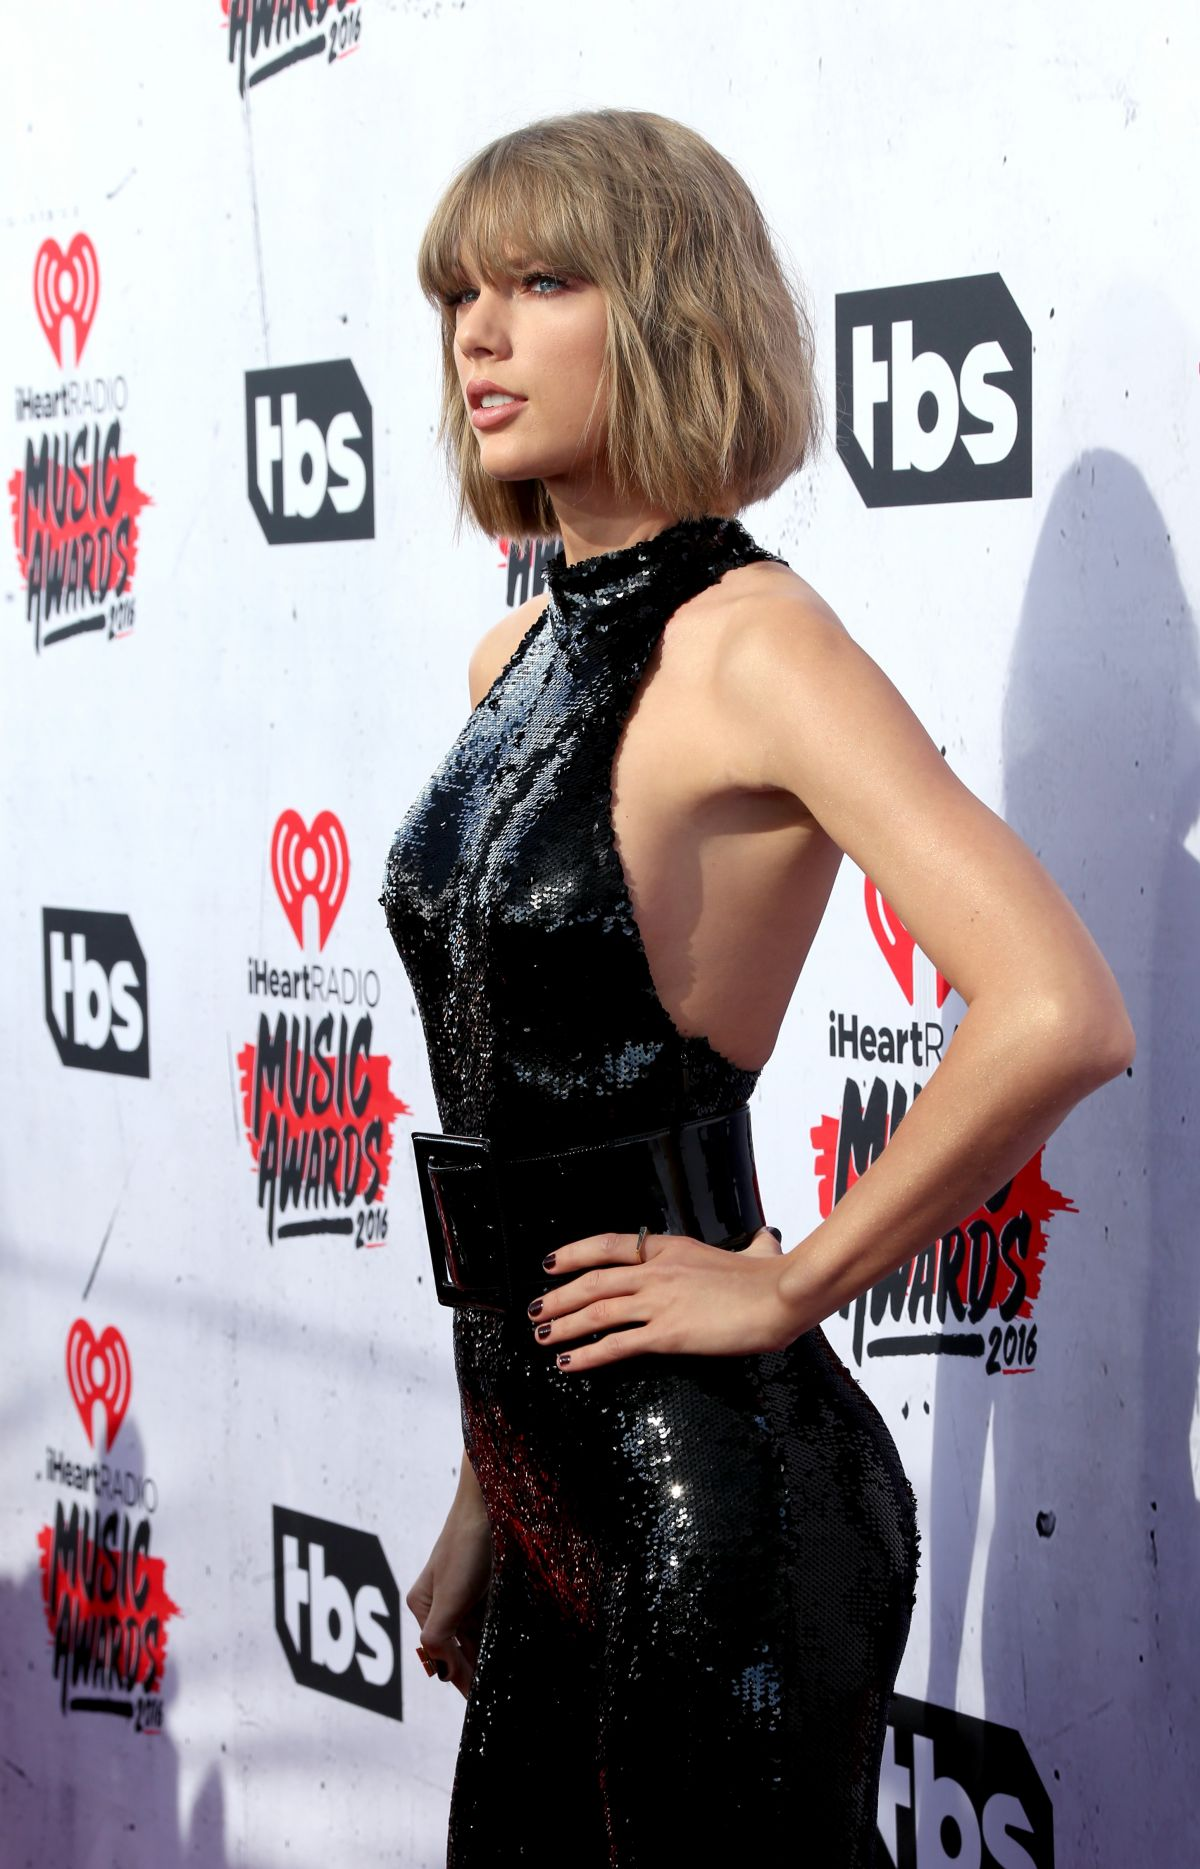 TAYLOR SWIFT at iHeartRadio Music Awards in Los Angeles 04/03/2016